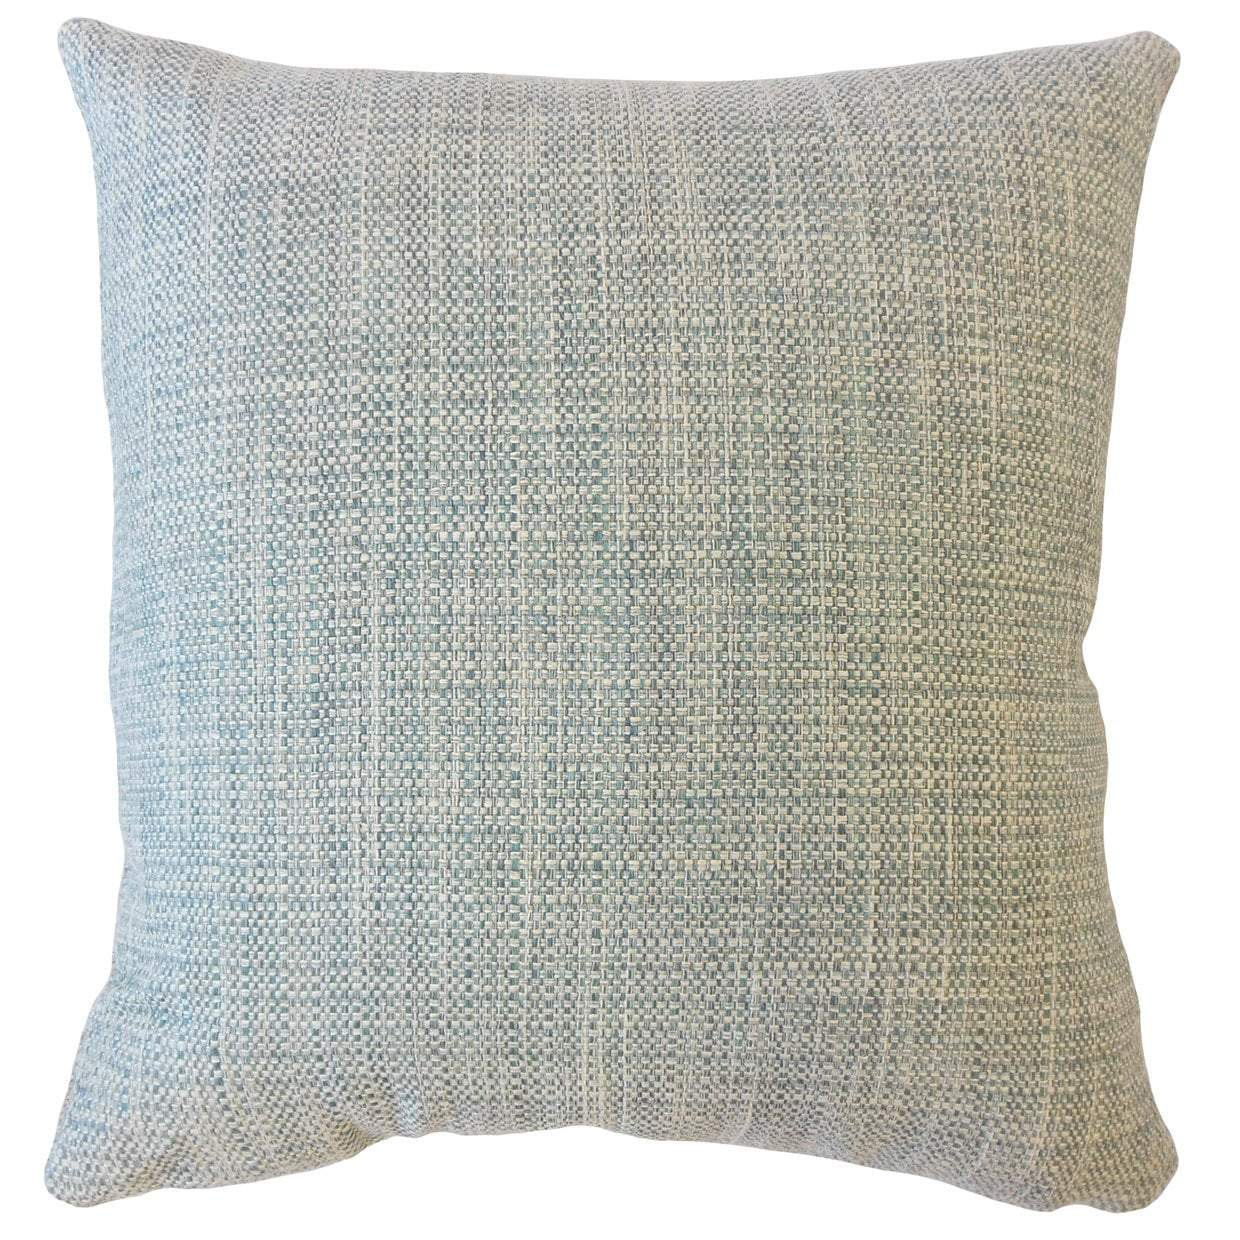 Blue Synthetic Solid Contemporary Throw Pillow Cover